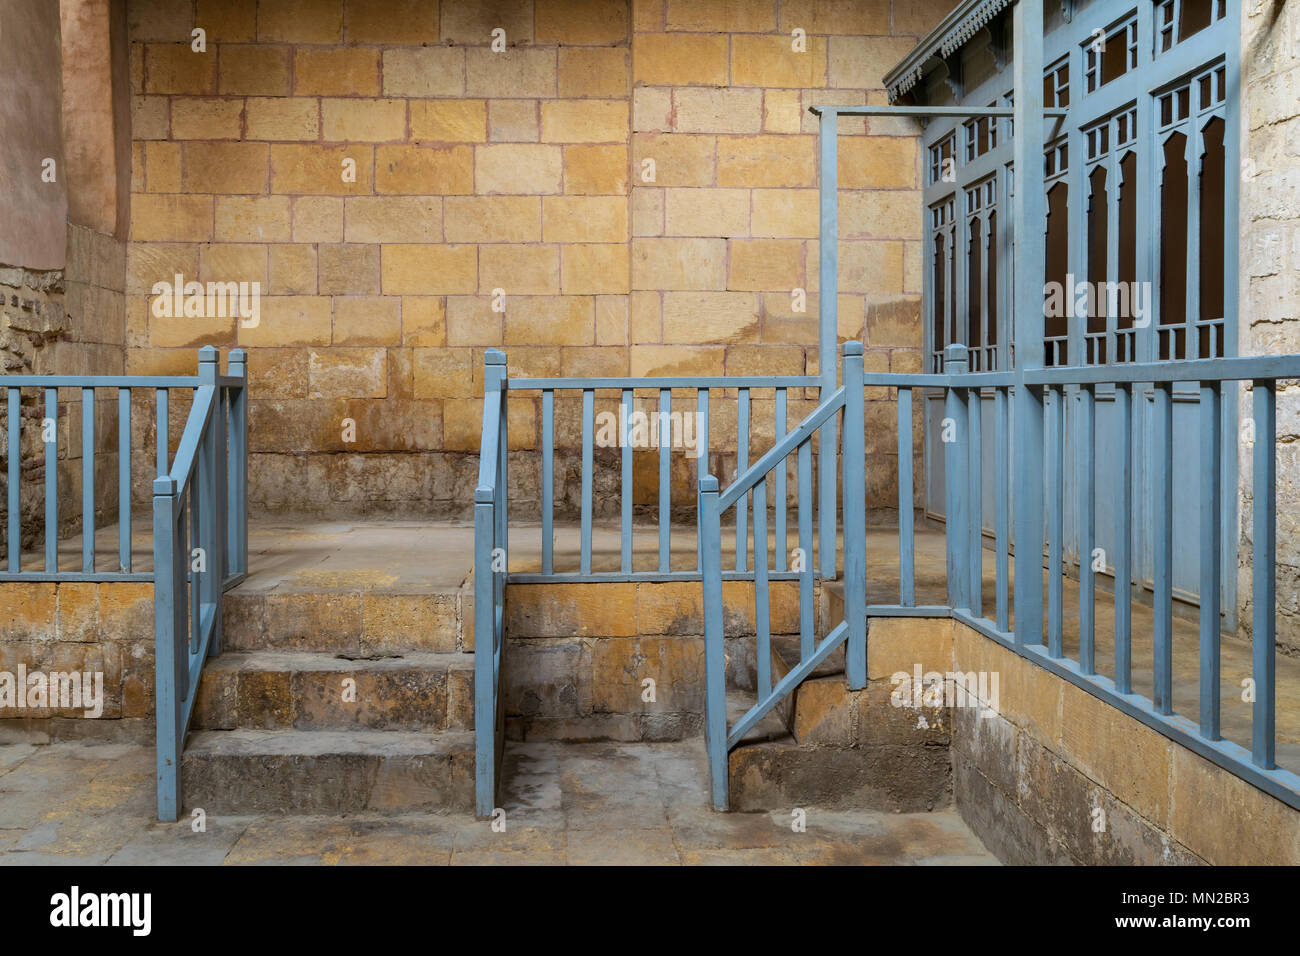 Abandoned historic traditional bathhouse (Hamam Inal) with staircase leading to bricks stone wall, wooden blue balustrade, and doors of changing rooms - Stock Image